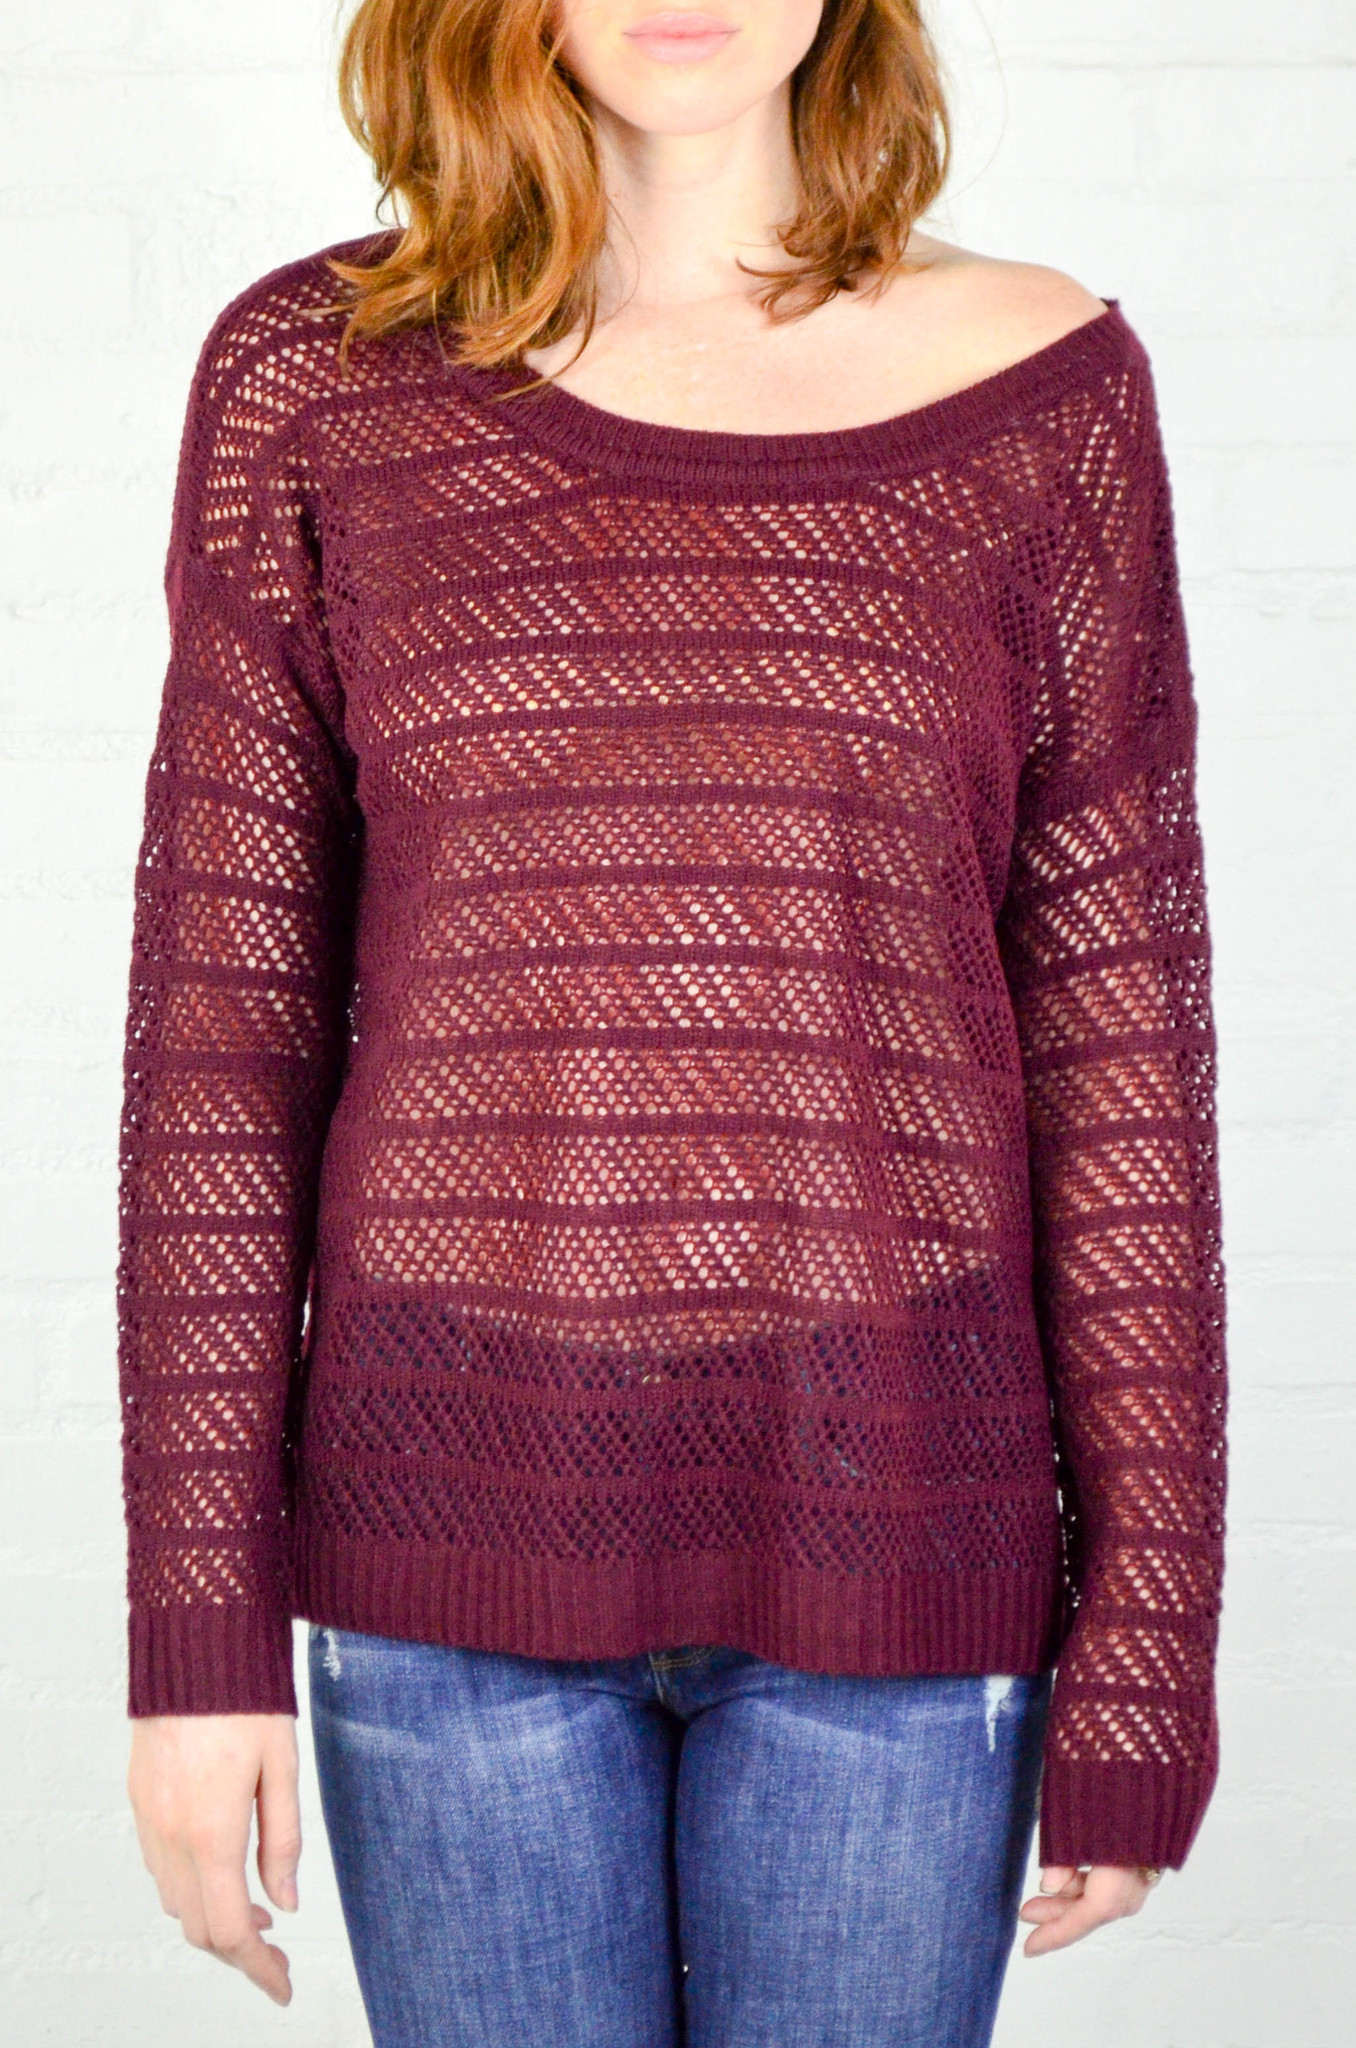 Cynthia Rowley Wool Sweater